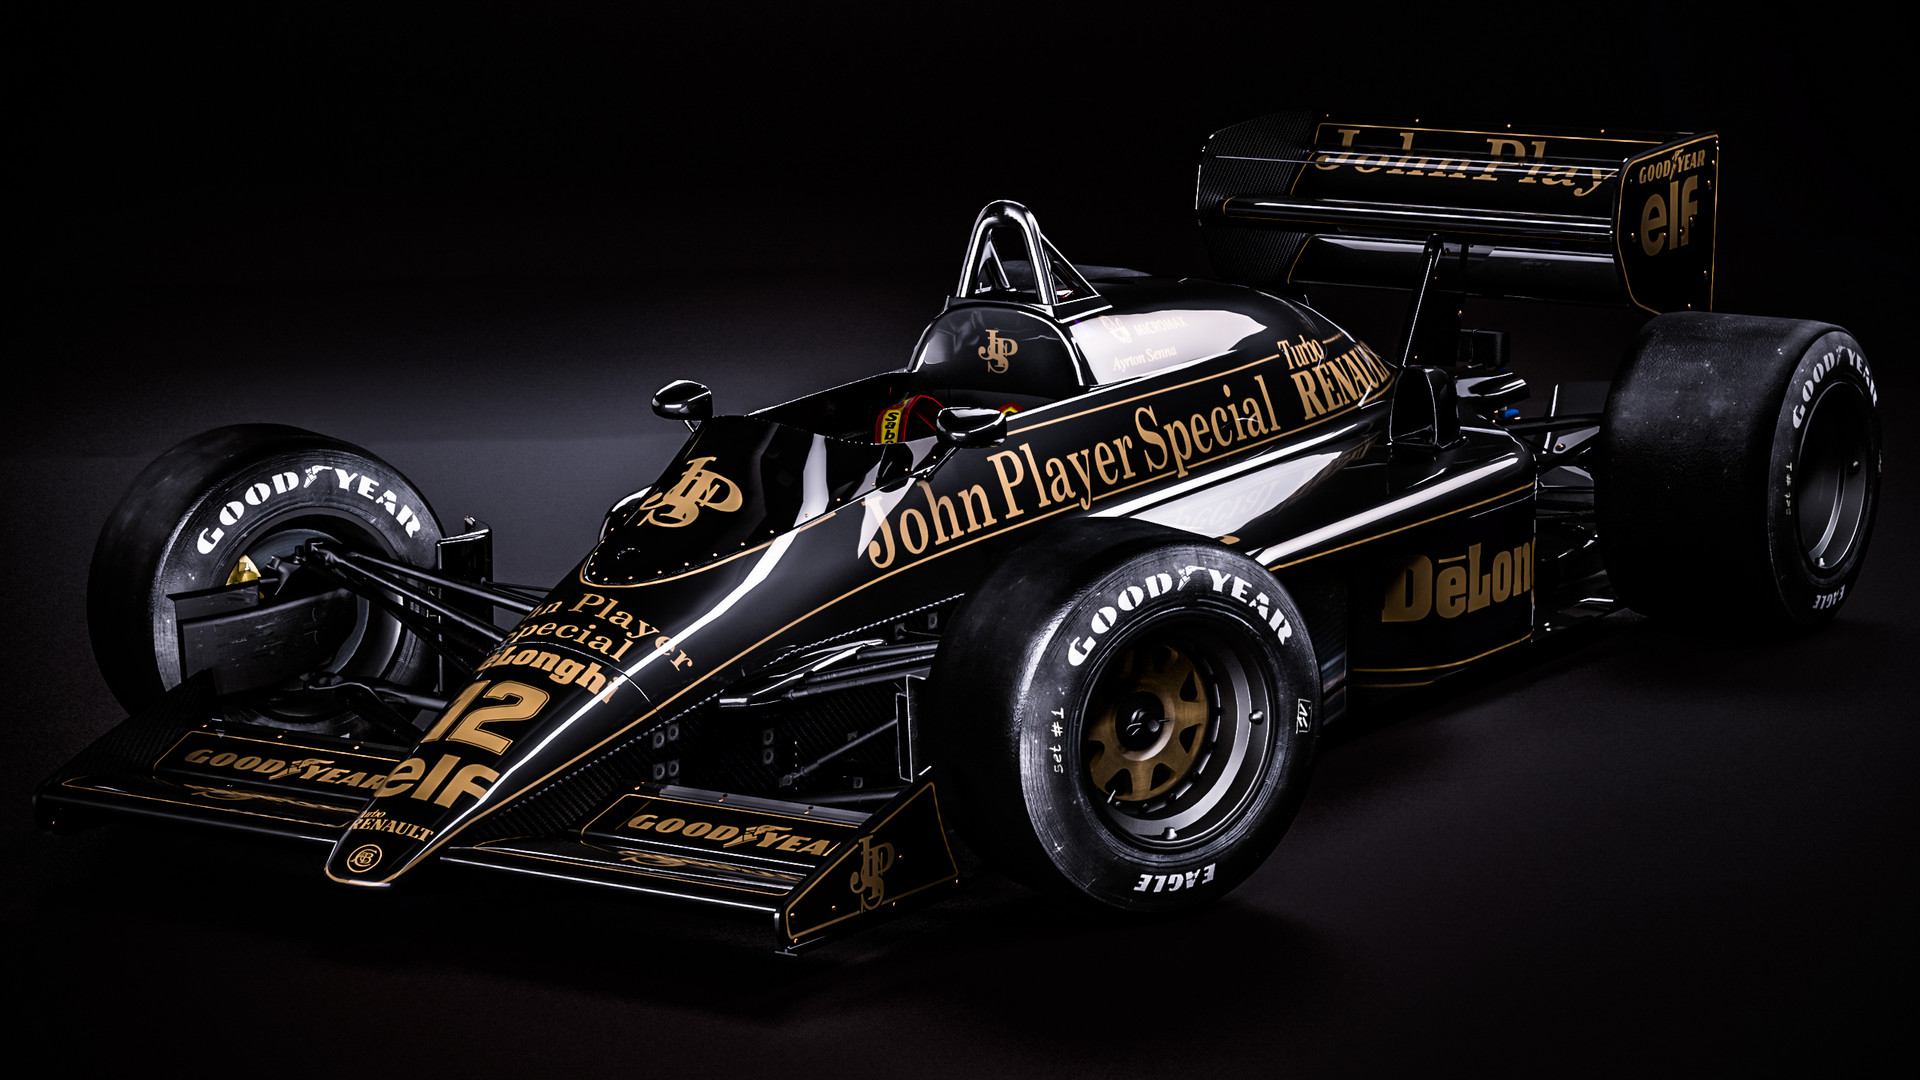 zoki nanco nancorocks lotus 98t ayrton senna. Black Bedroom Furniture Sets. Home Design Ideas